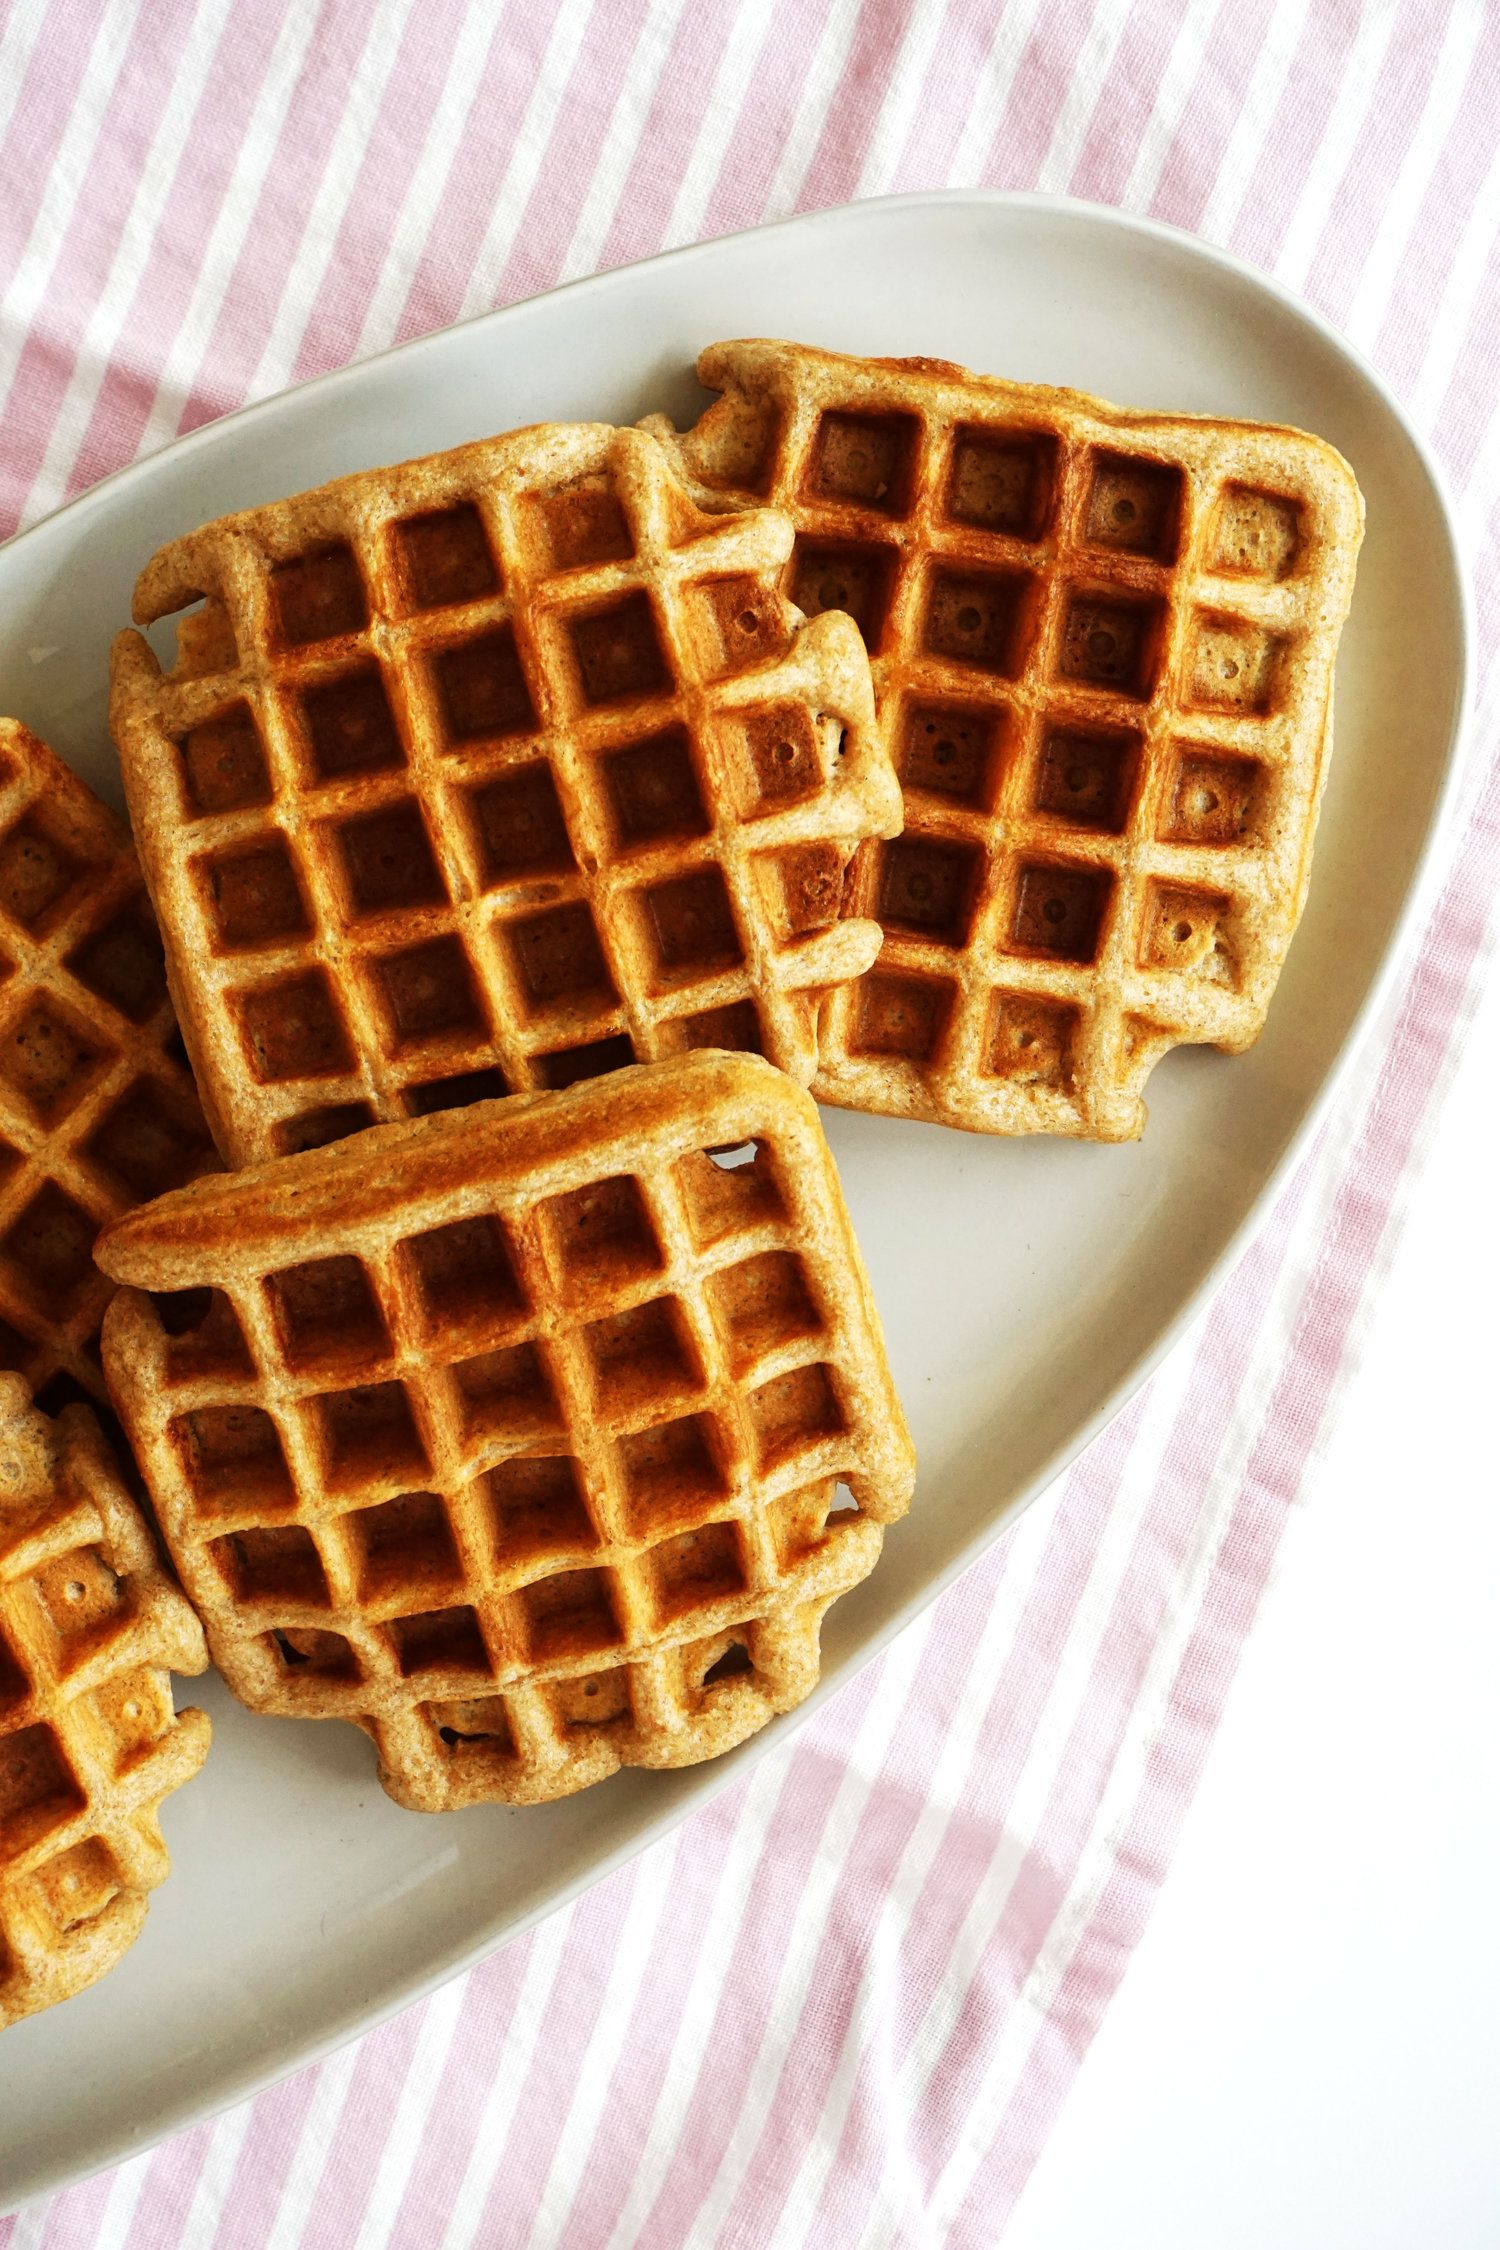 Classic Whole Wheat Buttermilk Waffles Buttermilk Waffles Waffles Waffle Iron Recipes